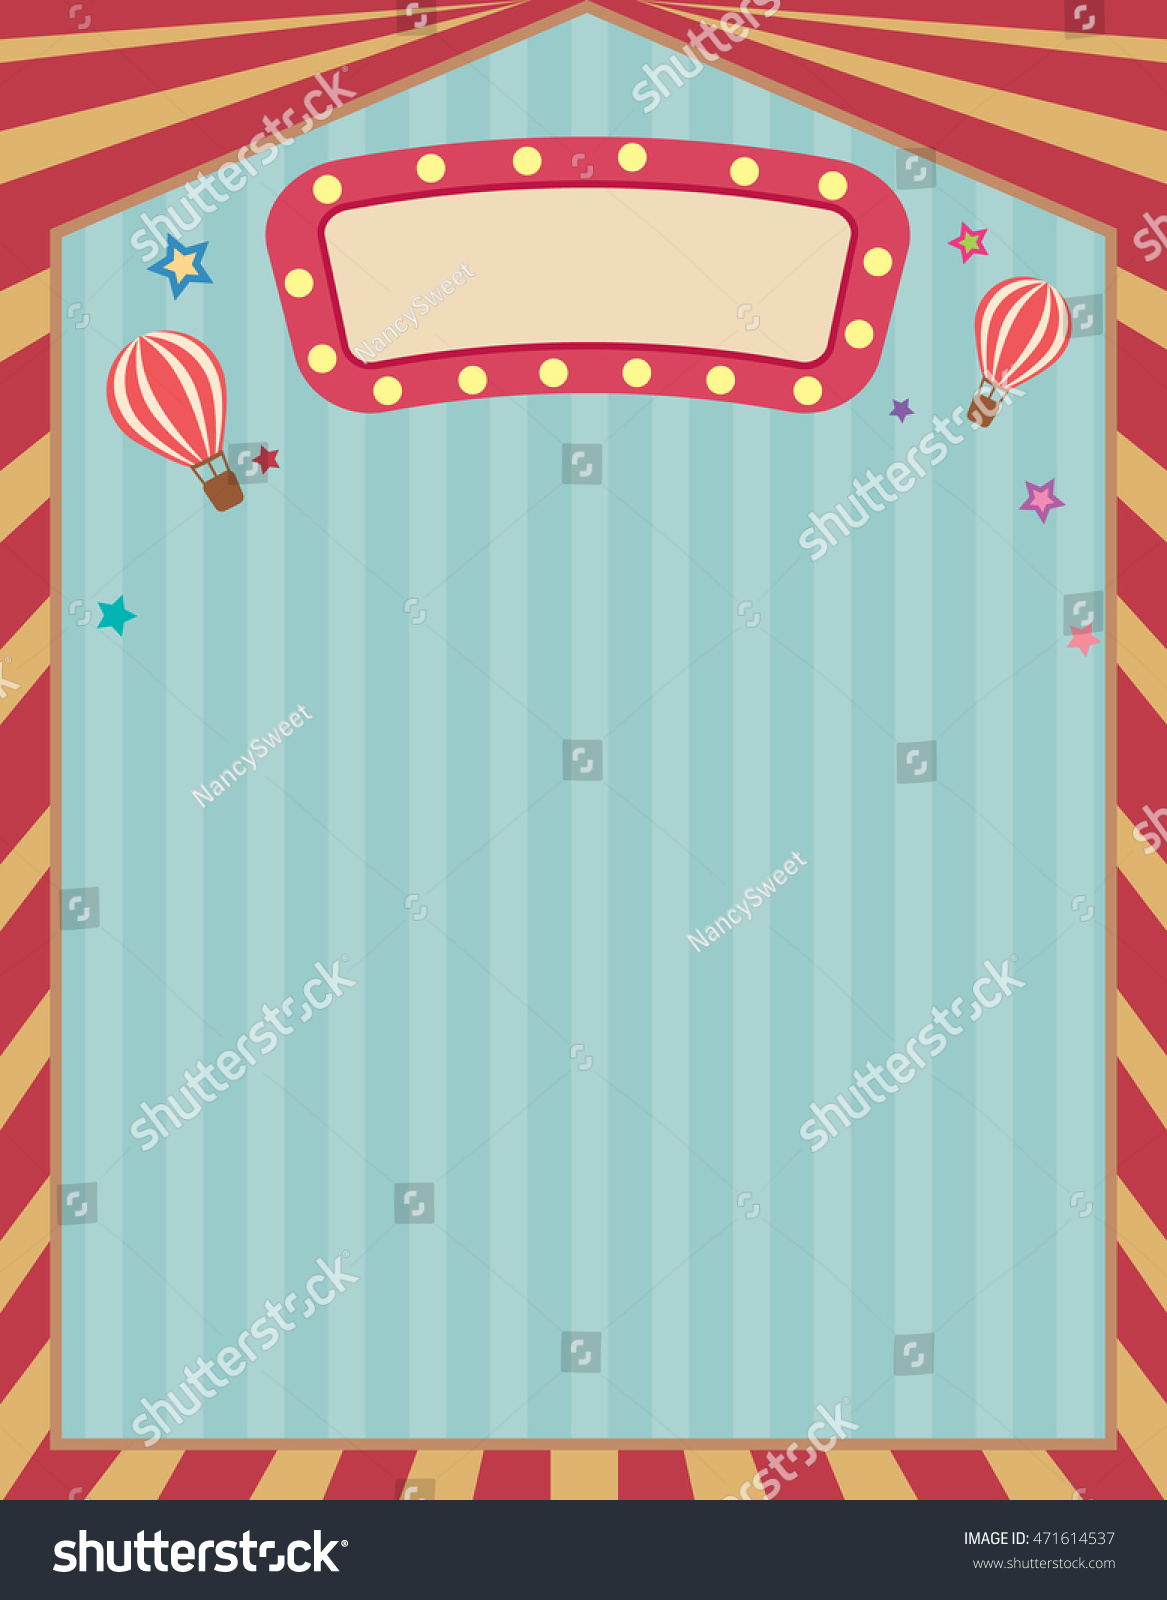 vector circus carnival template retro vintage stock vector (royalty